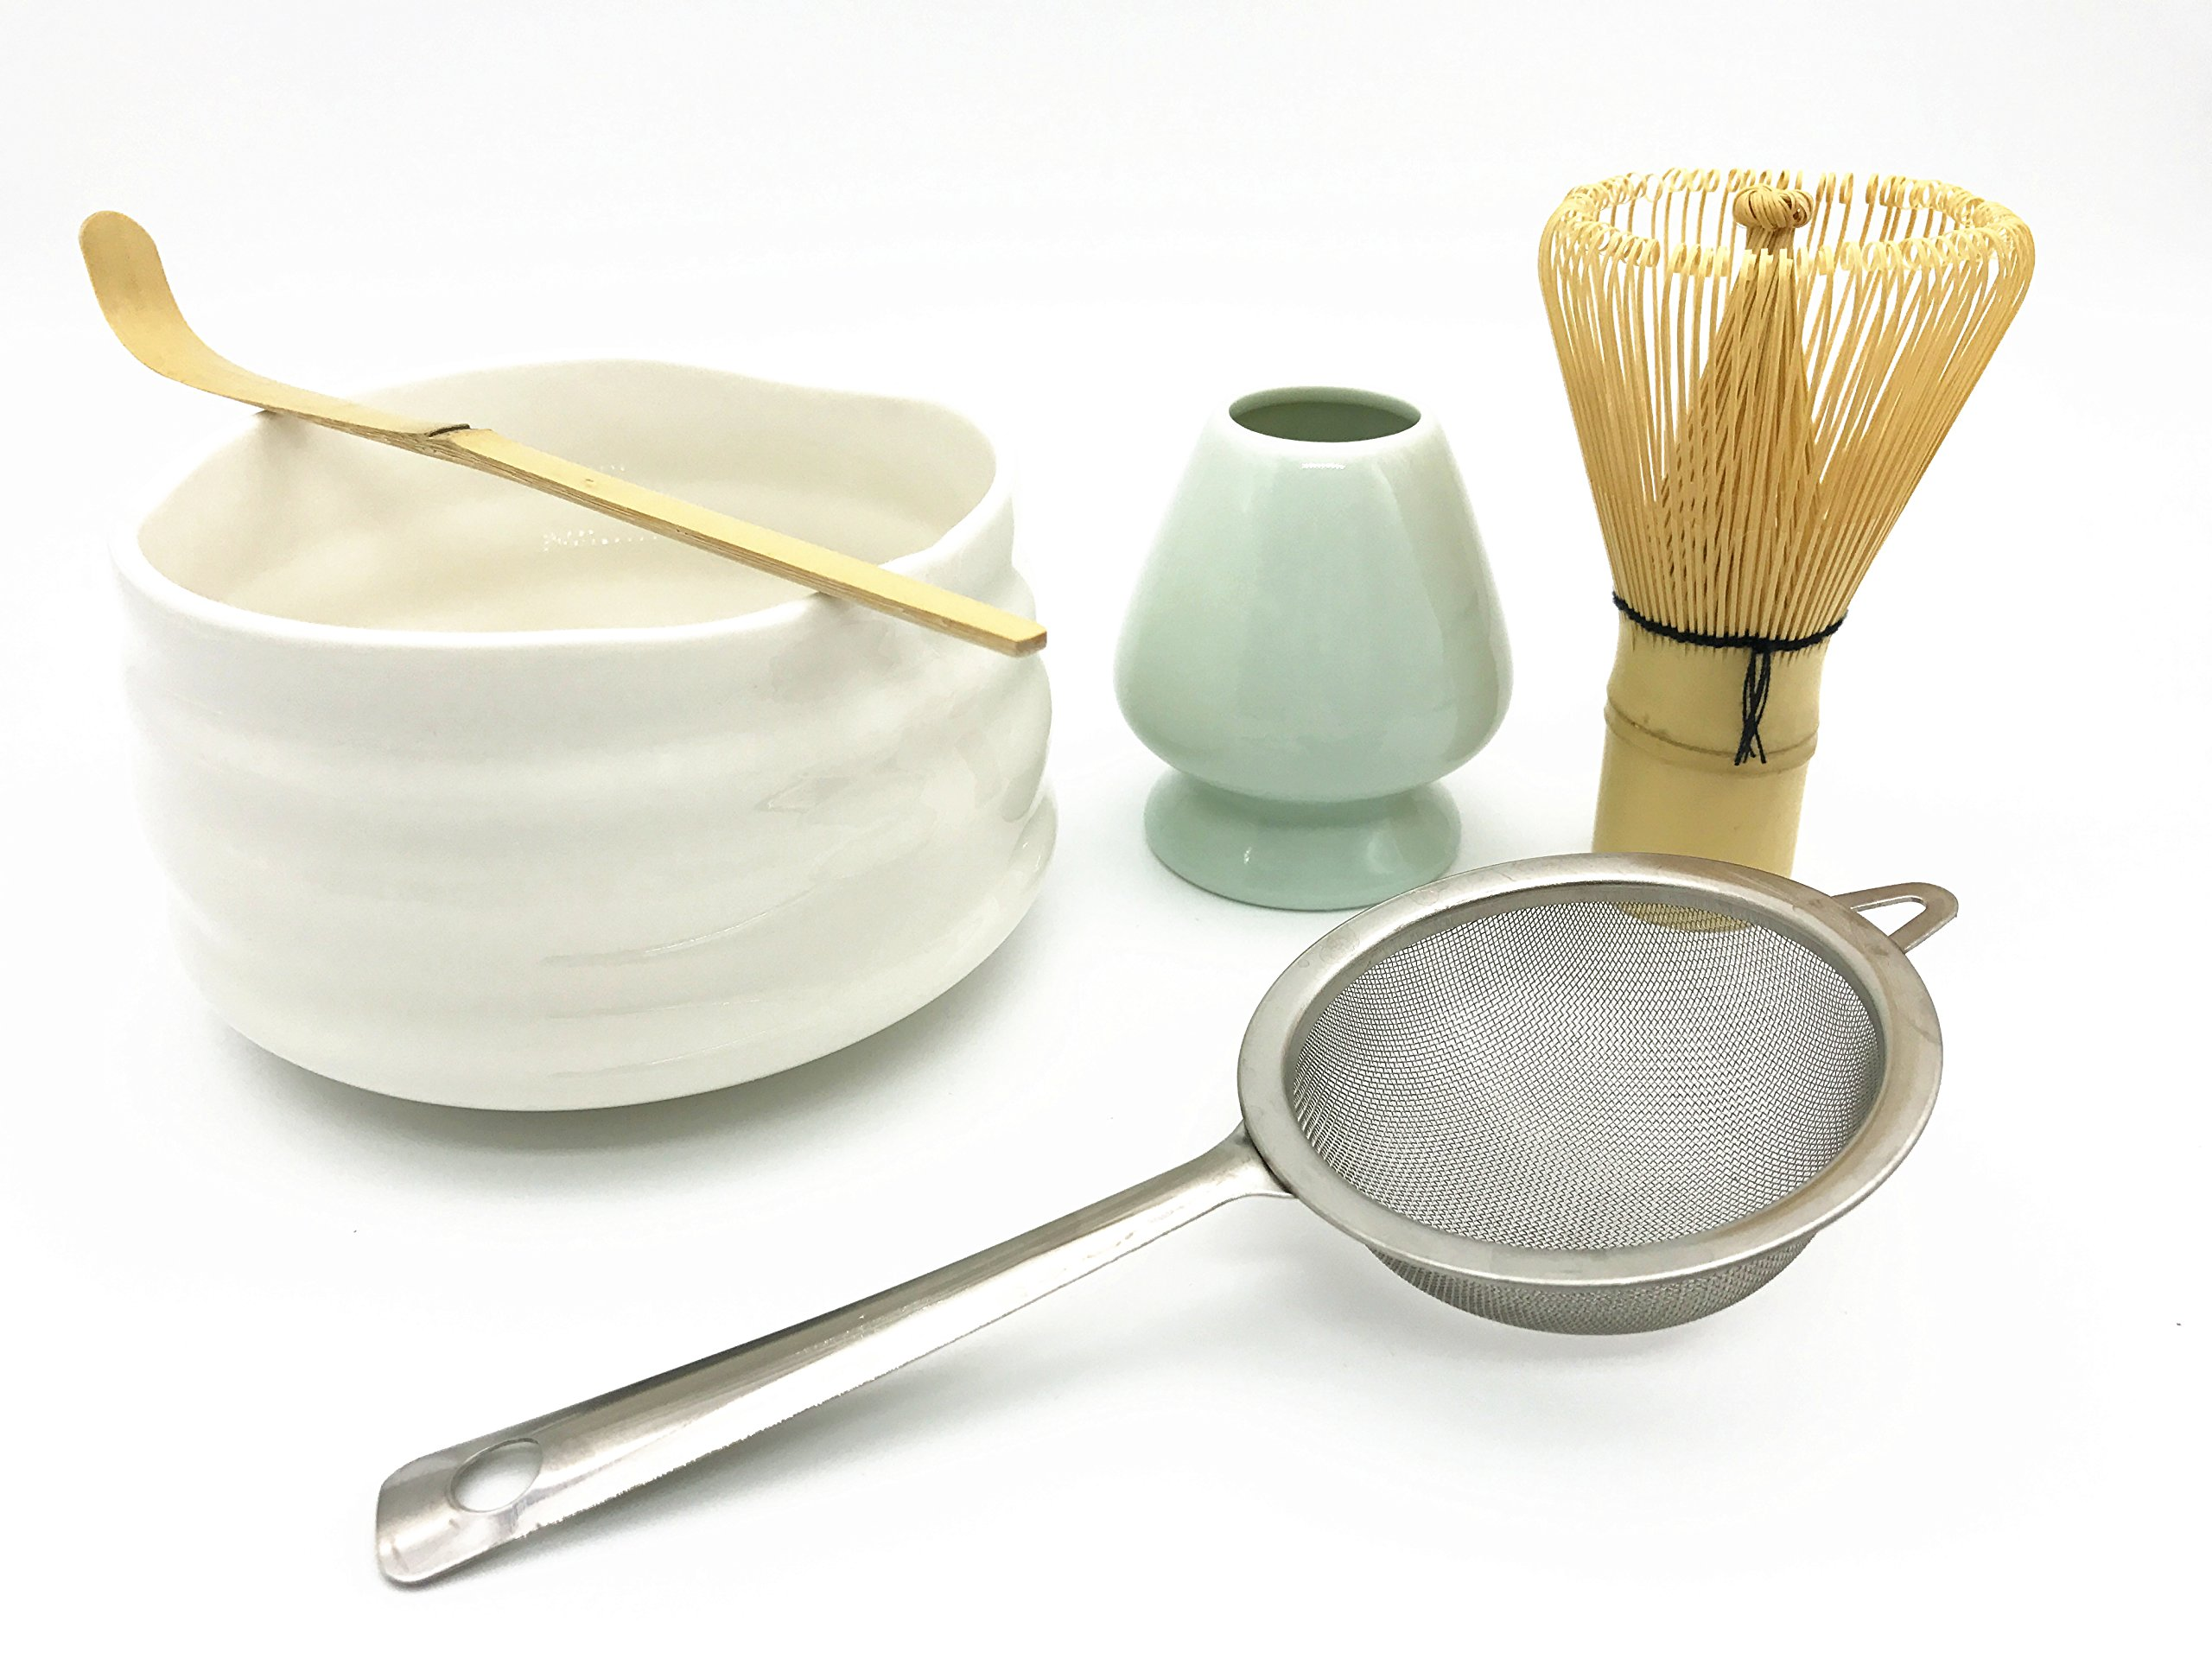 CHAQI Matcha Accessories Kit Include 5 items-100 Prongs Bamboo Whisk Chasen,Bamboo Scoop,Stainless Steel Tea Filter and Ceramic Matcha Bowl & Whisk Holder (White)